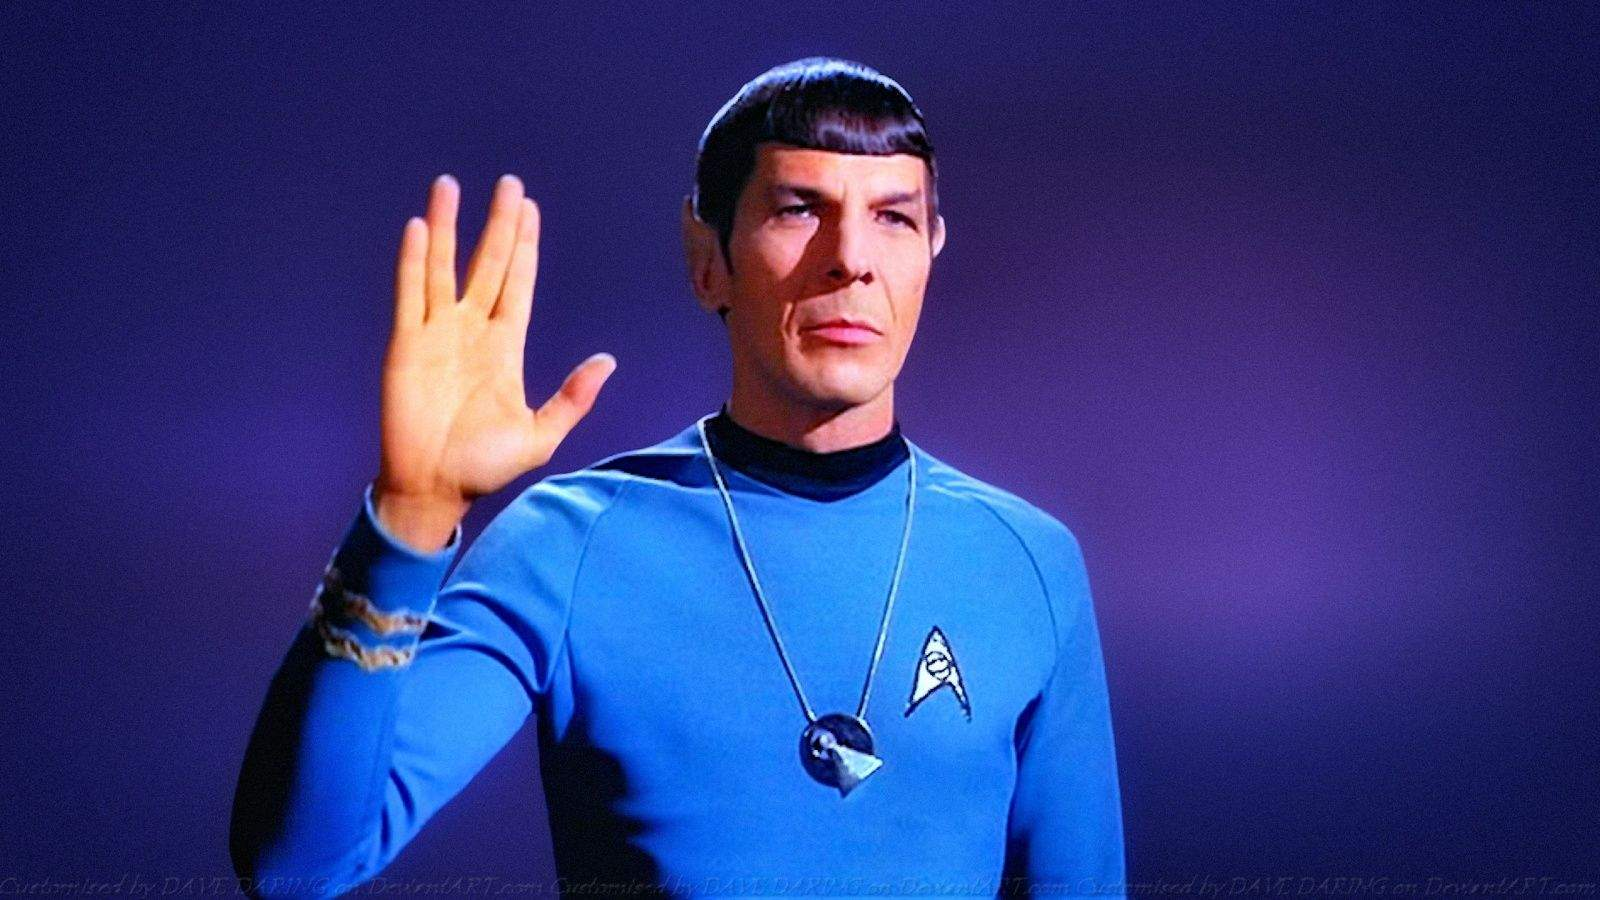 Spock's Vulcan Salute Should Replace Traditional Handshakes to prevent Coronavirus 45